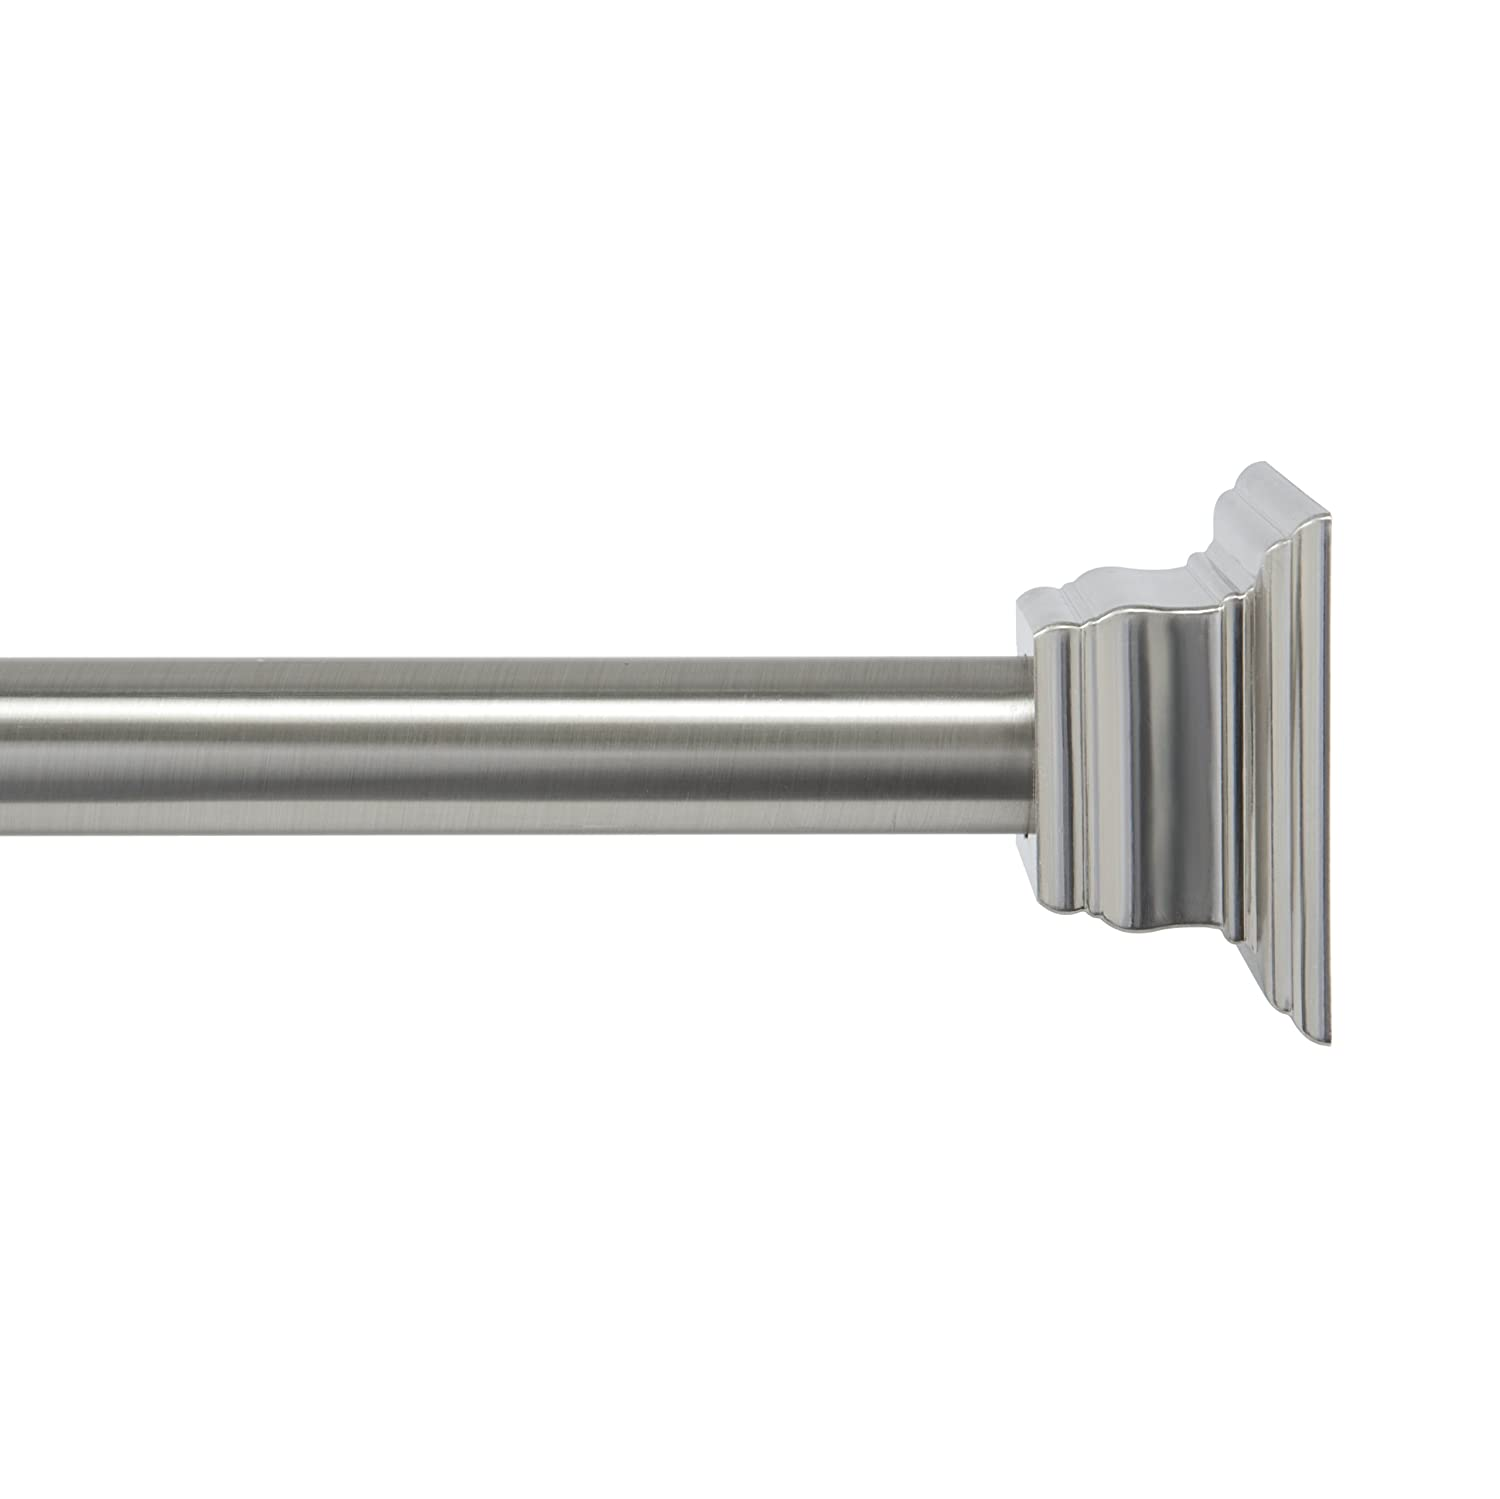 Kenney KN60954 Claire Tension Shower Curtain Rod, Brushed Nickel